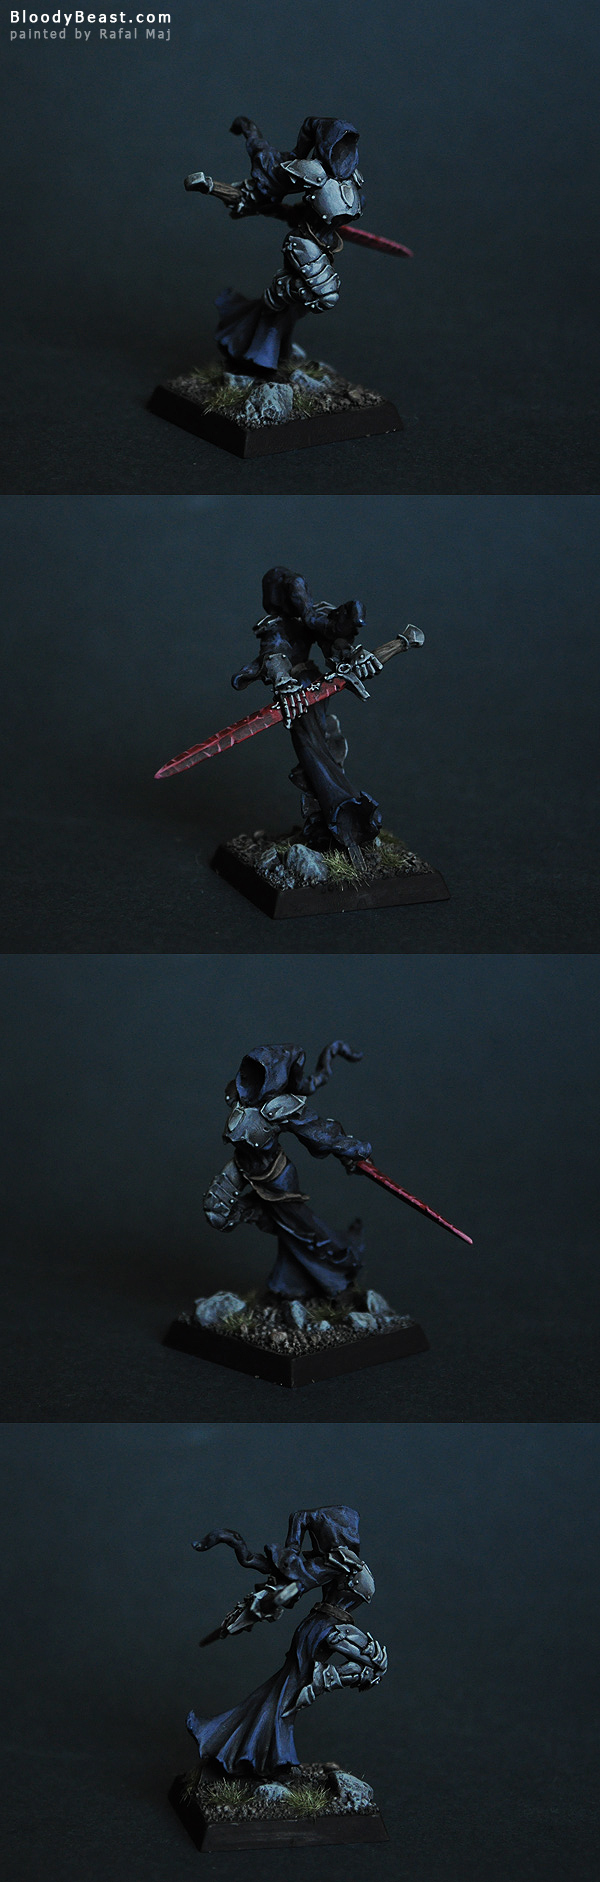 Nivar, Necropolis Hero (Reaper 14033) painted by Rafal Maj (BloodyBeast.com)